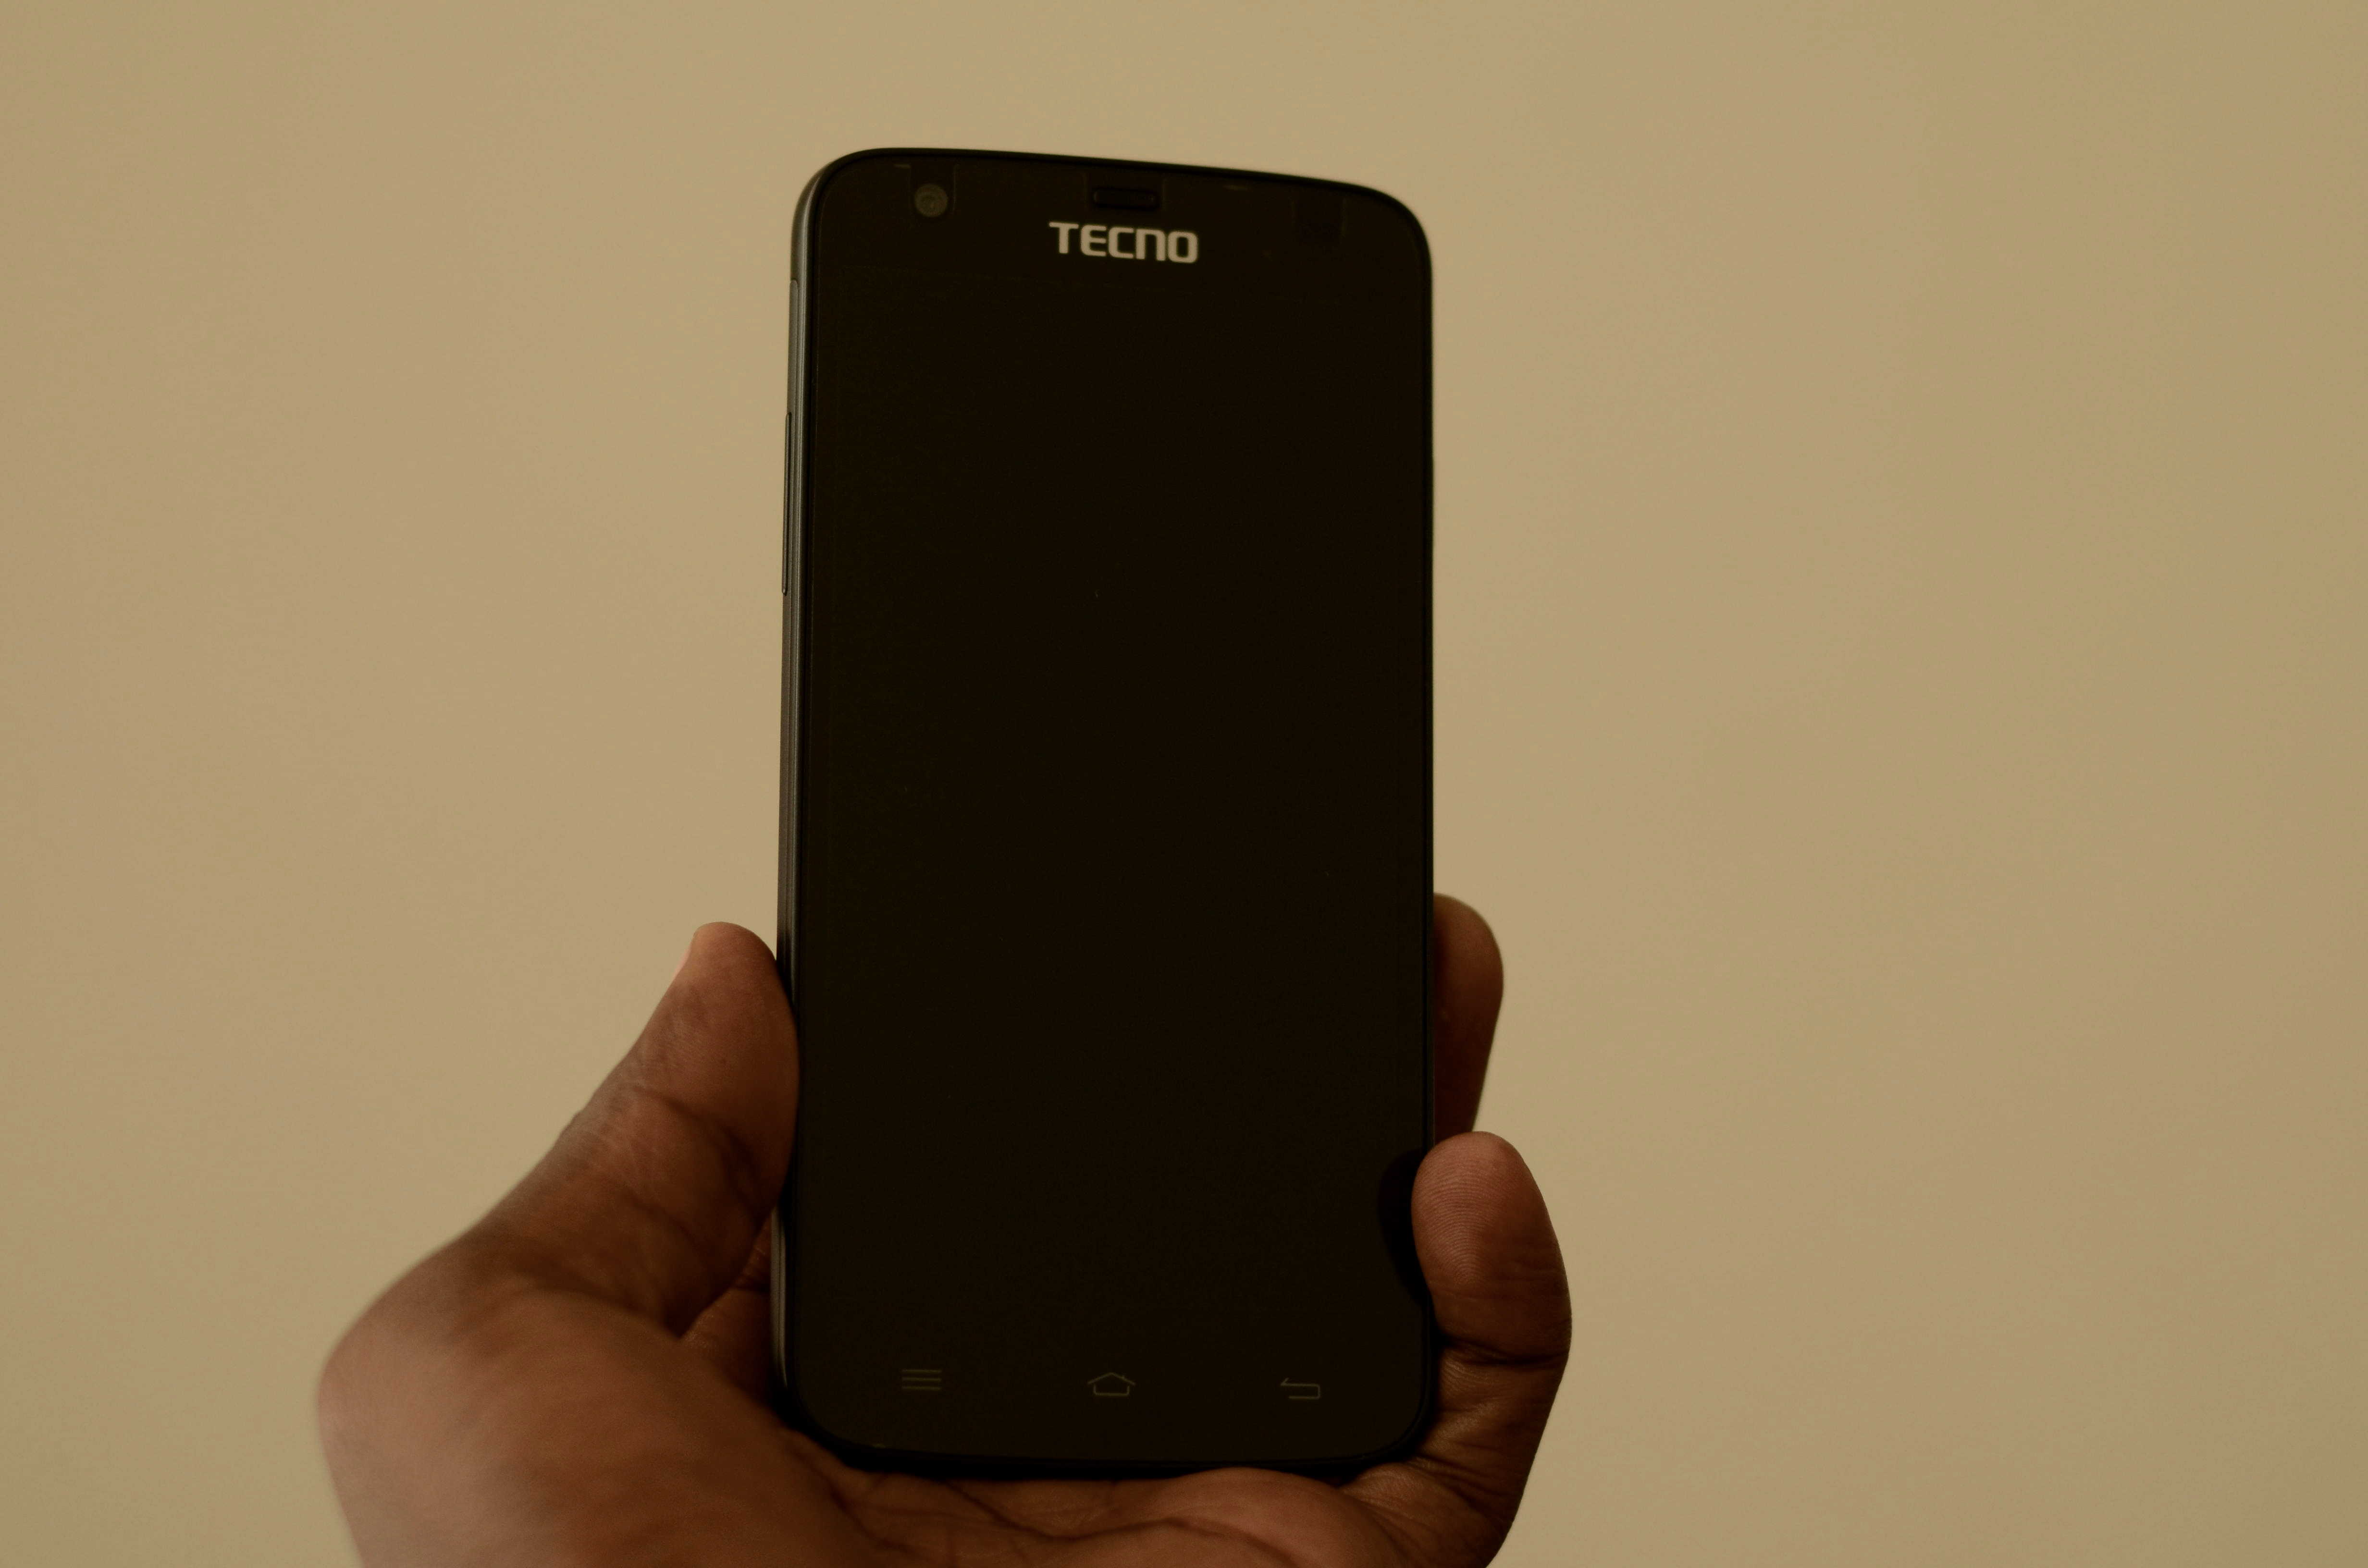 Tecno H7 Review: The most affordable high-performance Quad